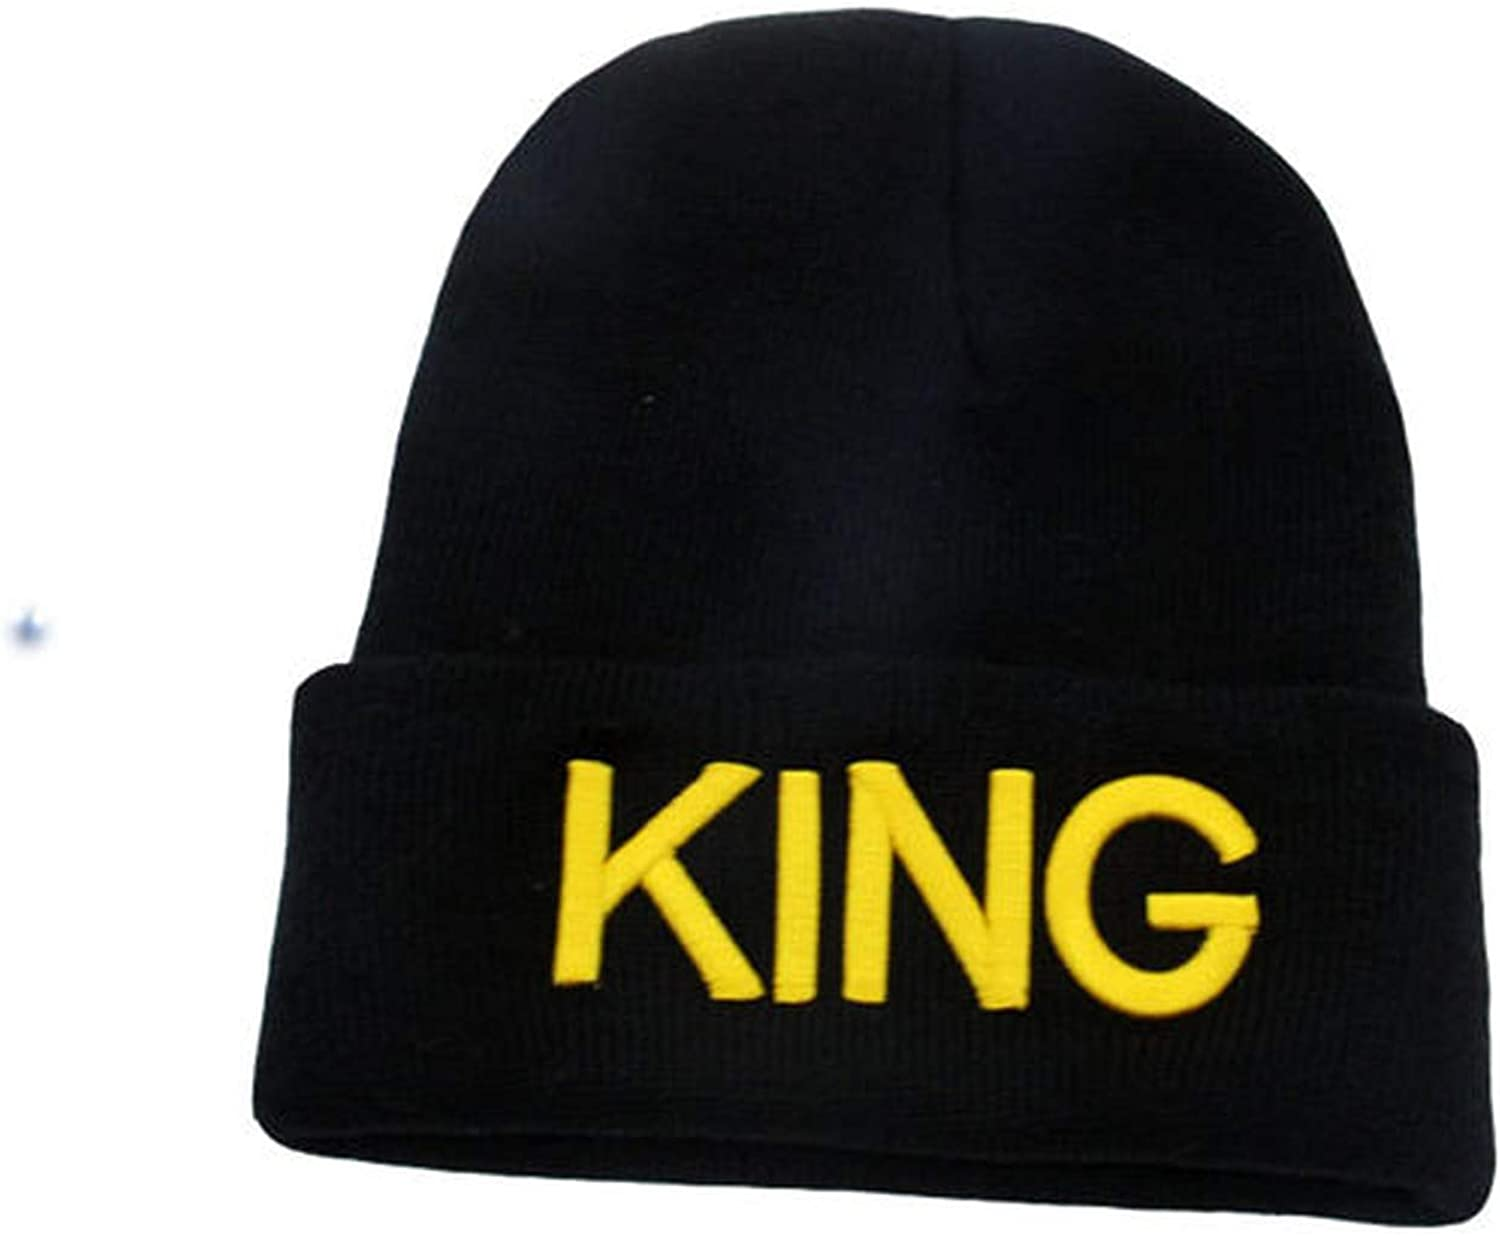 Letter King Queen Beanie Crown Cap Knitting Beanies Skullies Knitted Hiphop Hat Couples Lovers Winter Hats